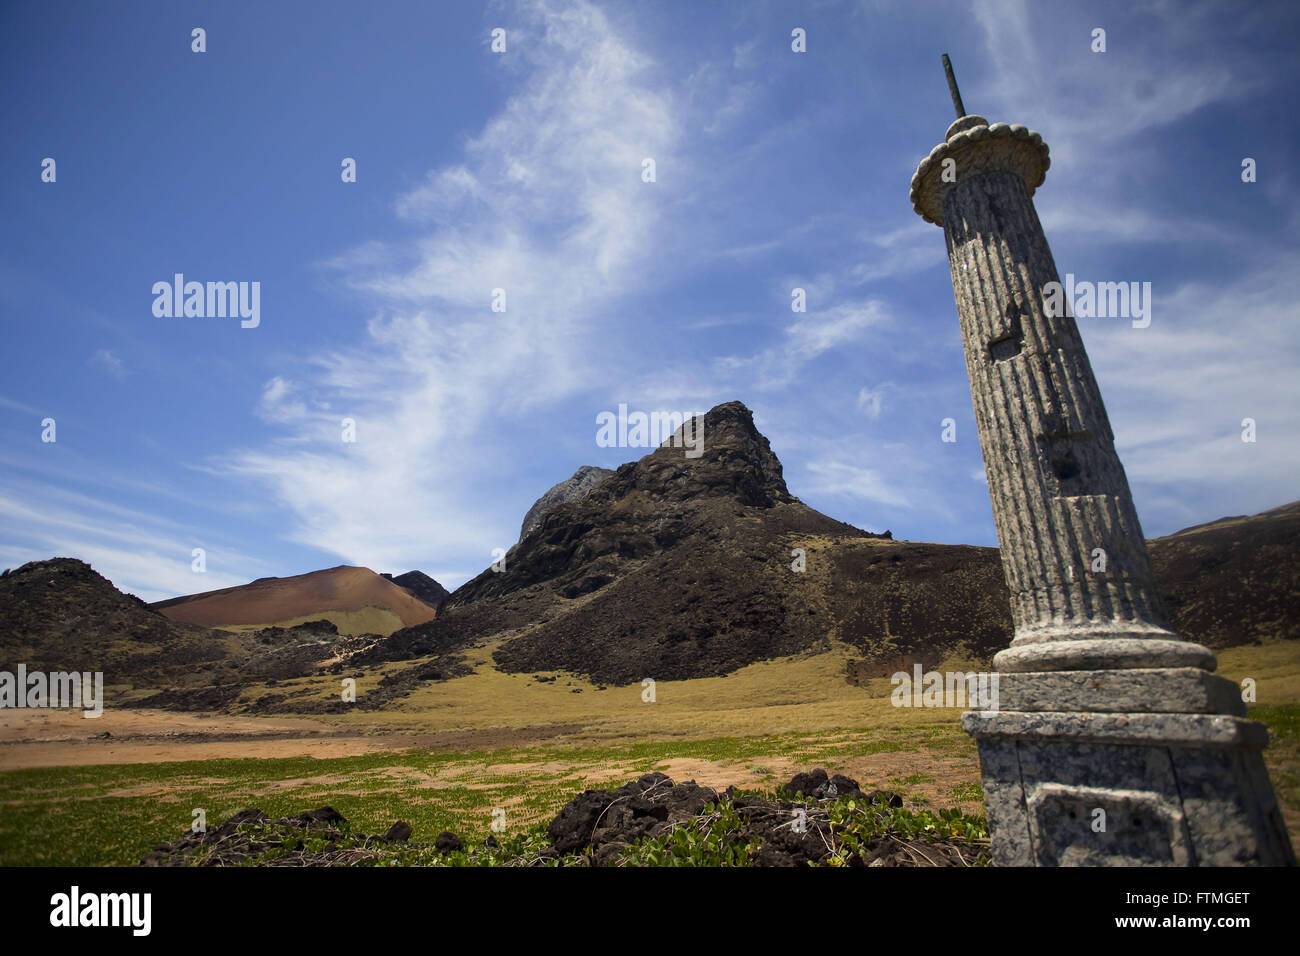 Volcanic formation and landmark in the island of Trinidad - Stock Image